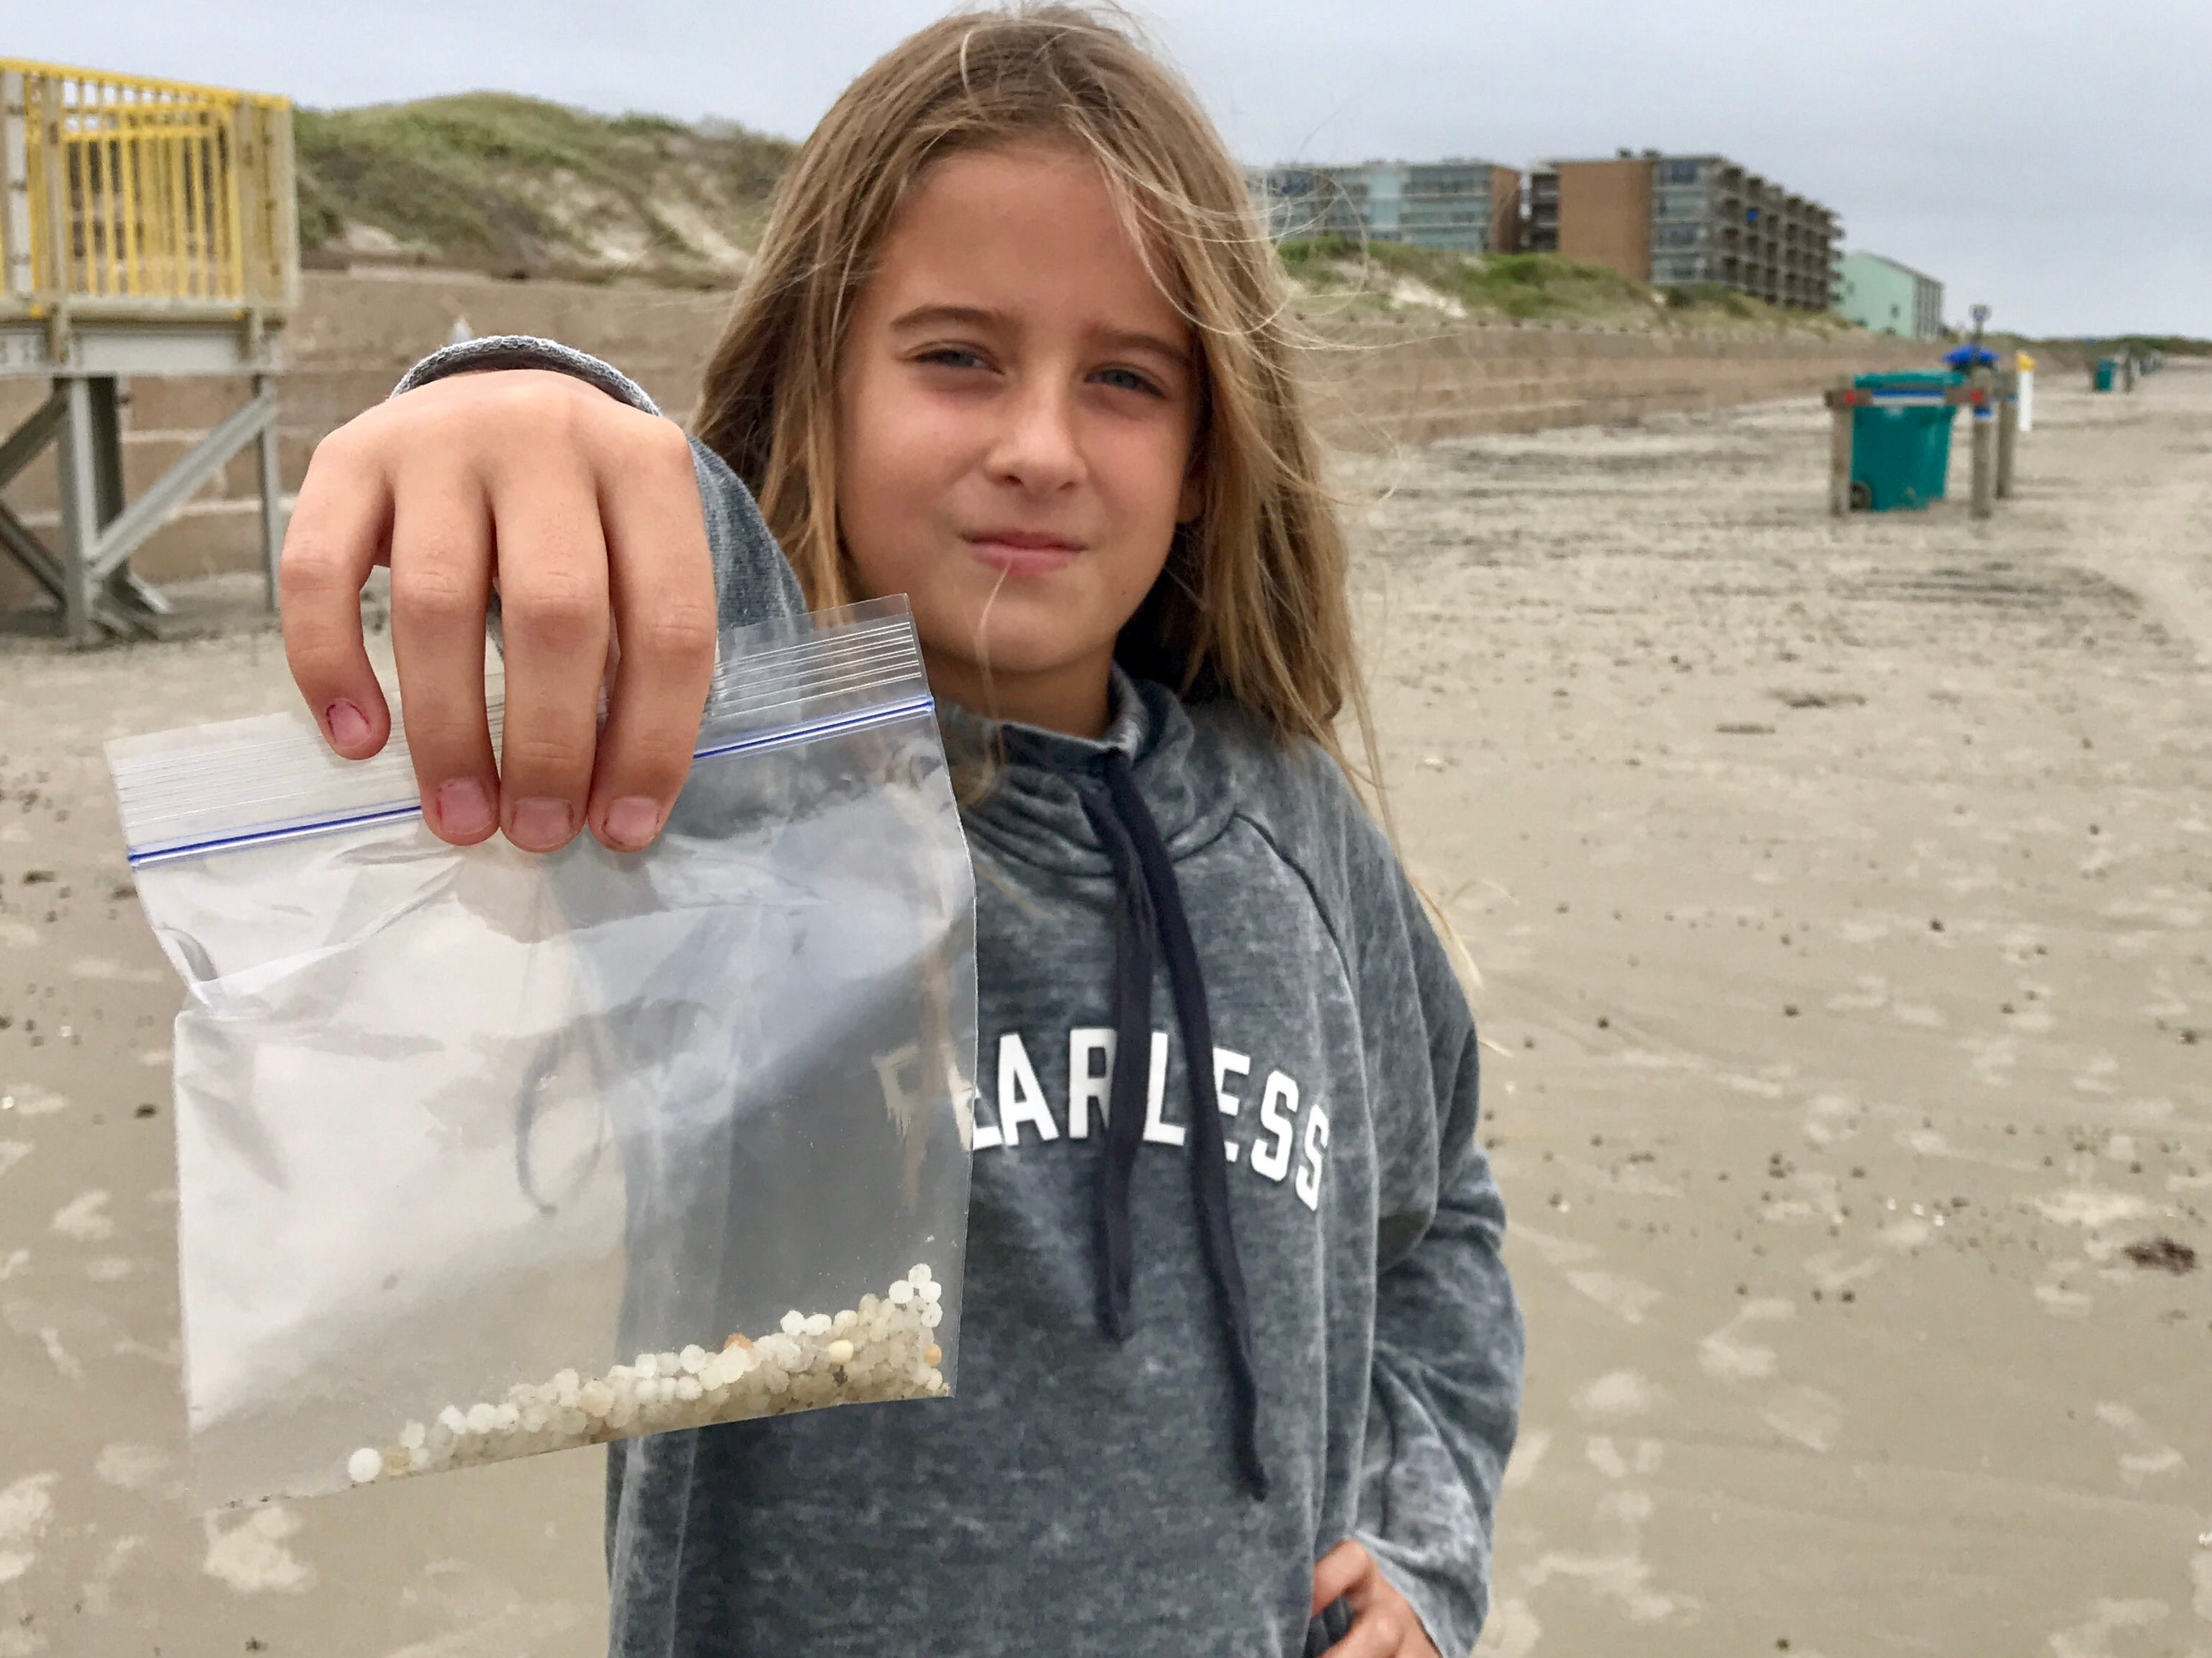 Parker Tunnell, 9, is collecting nurdles as part of a school science project.